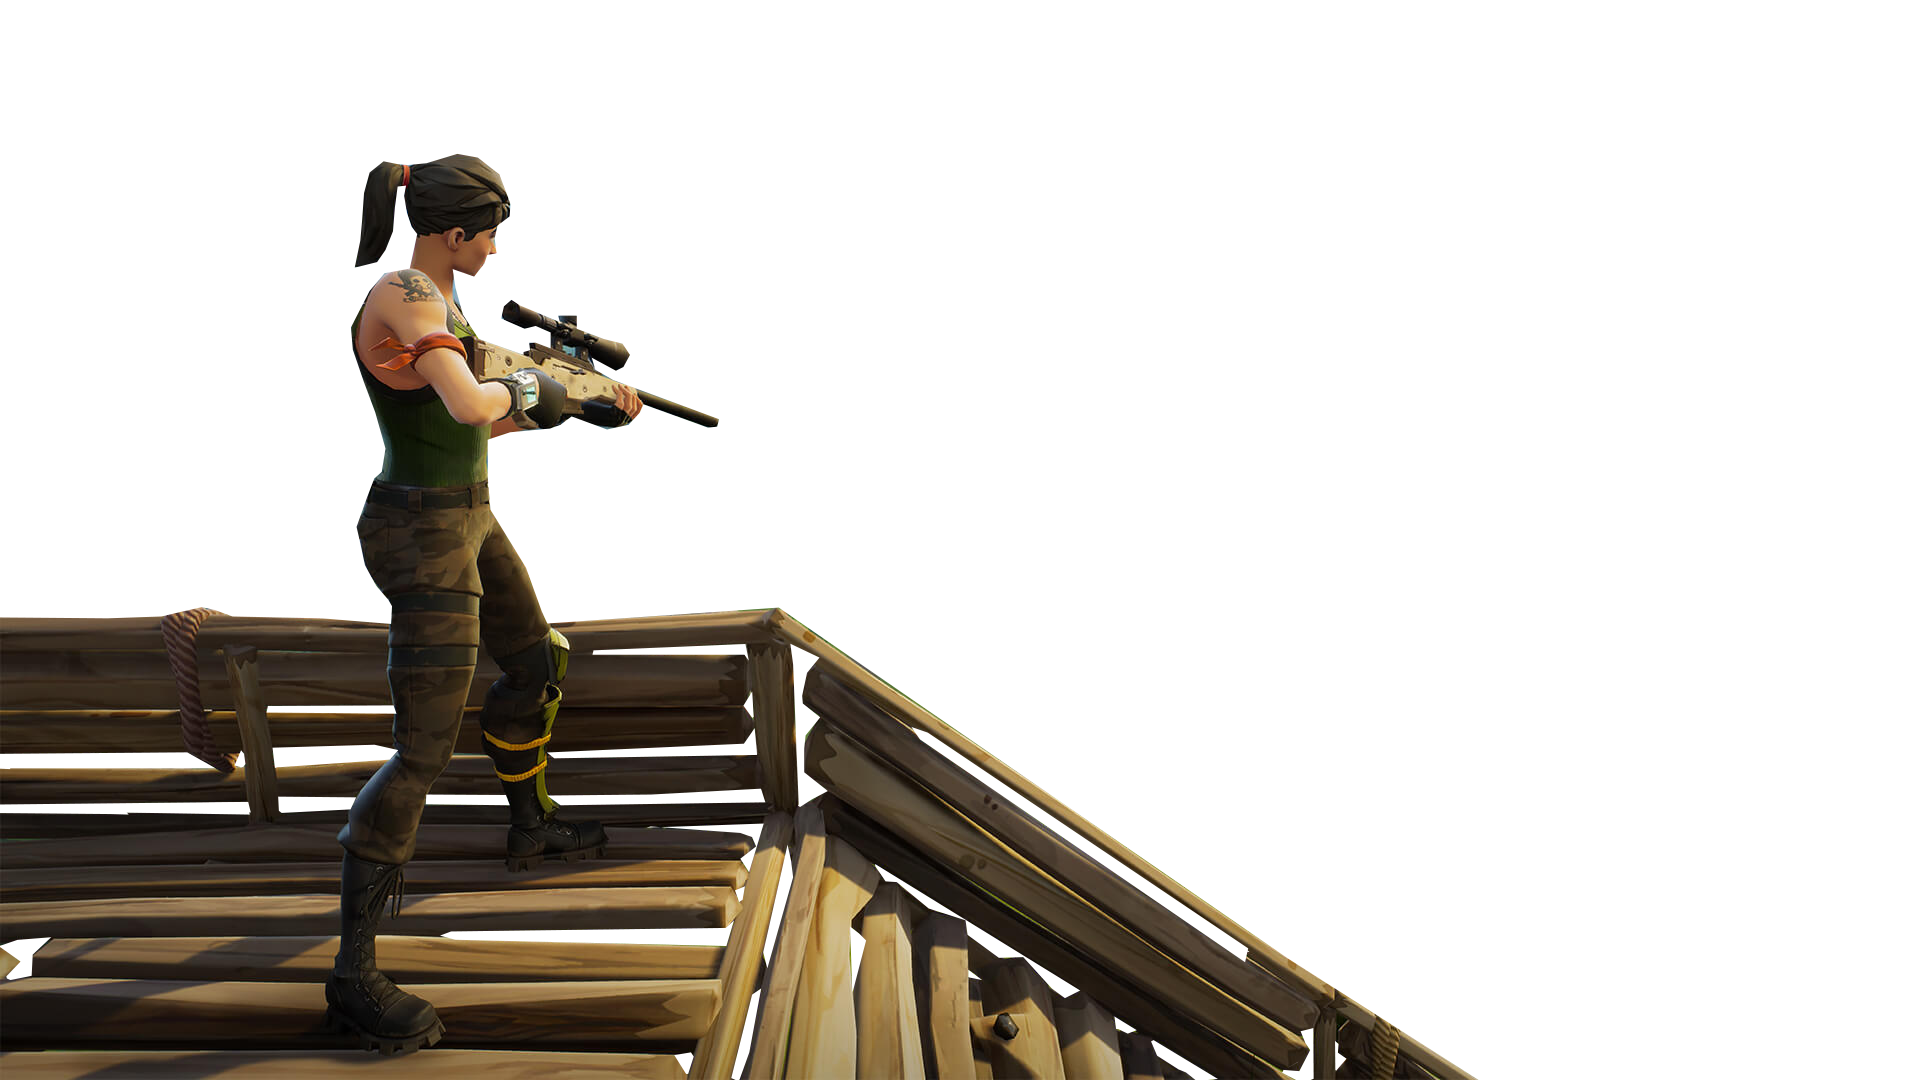 Sniper on Stairs Fortnite Thumbnail Template